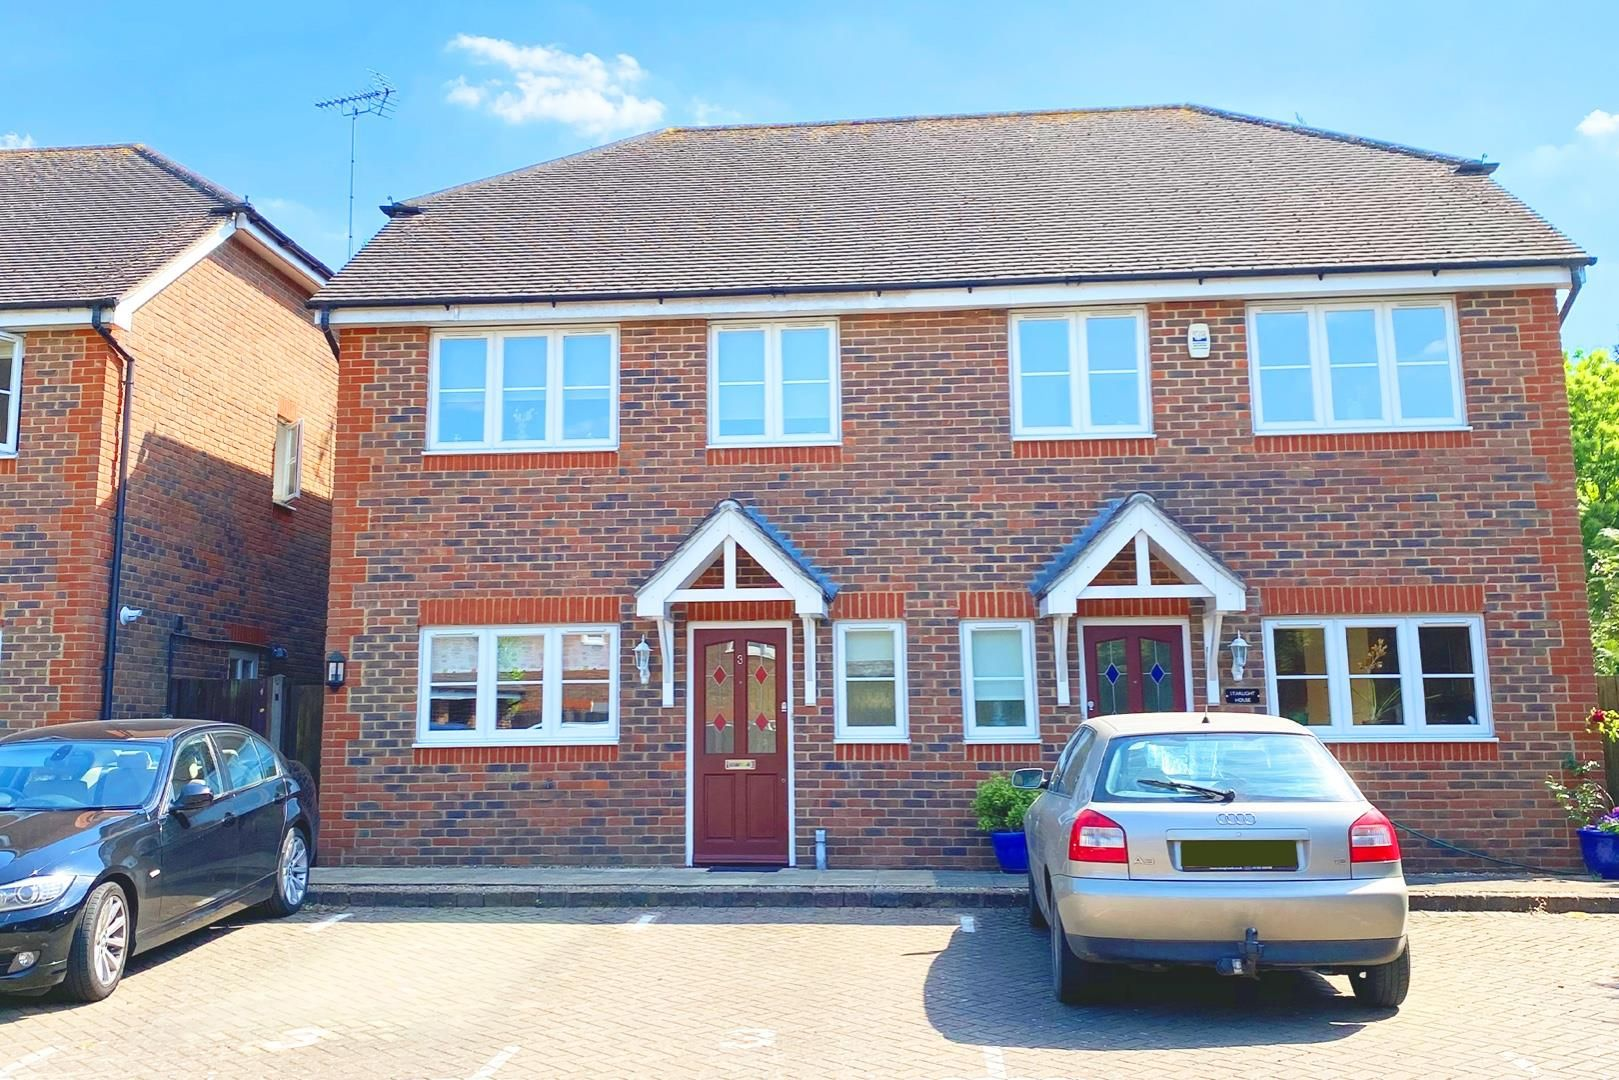 3 bed semi-detached for sale in Warfield, RG42